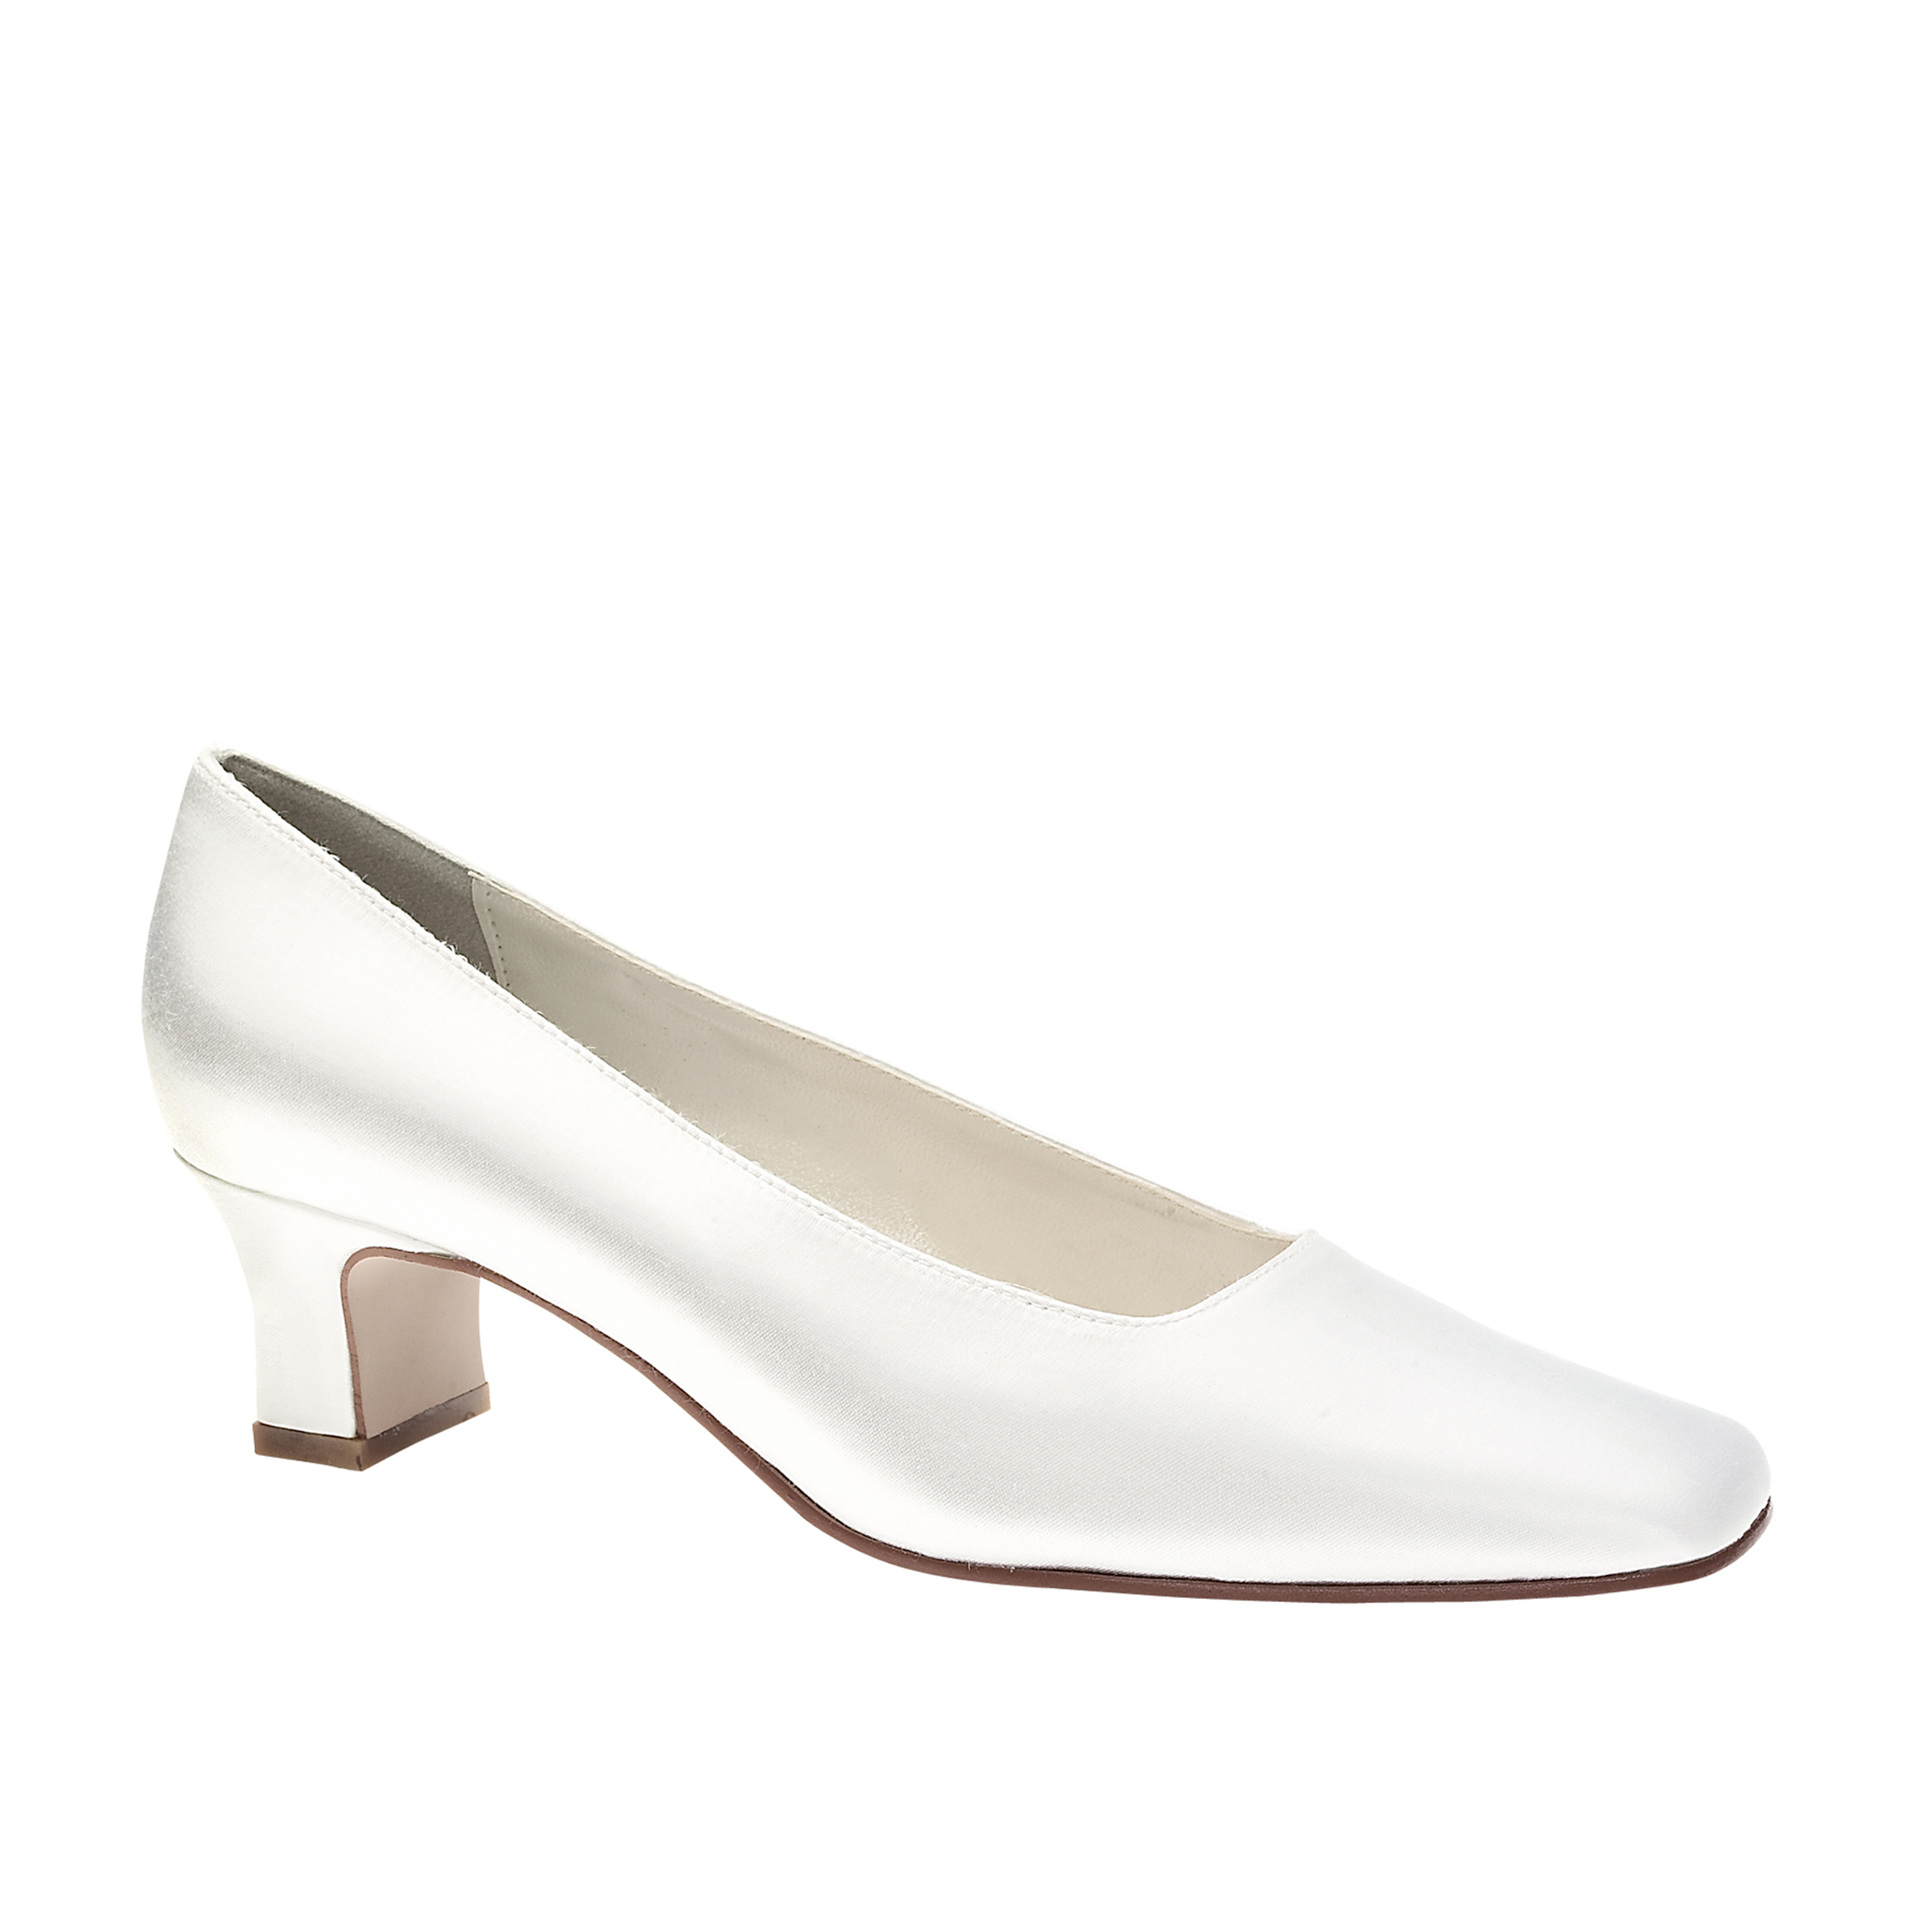 Touch Ups Betty Women's White Pumps 10.5 M by